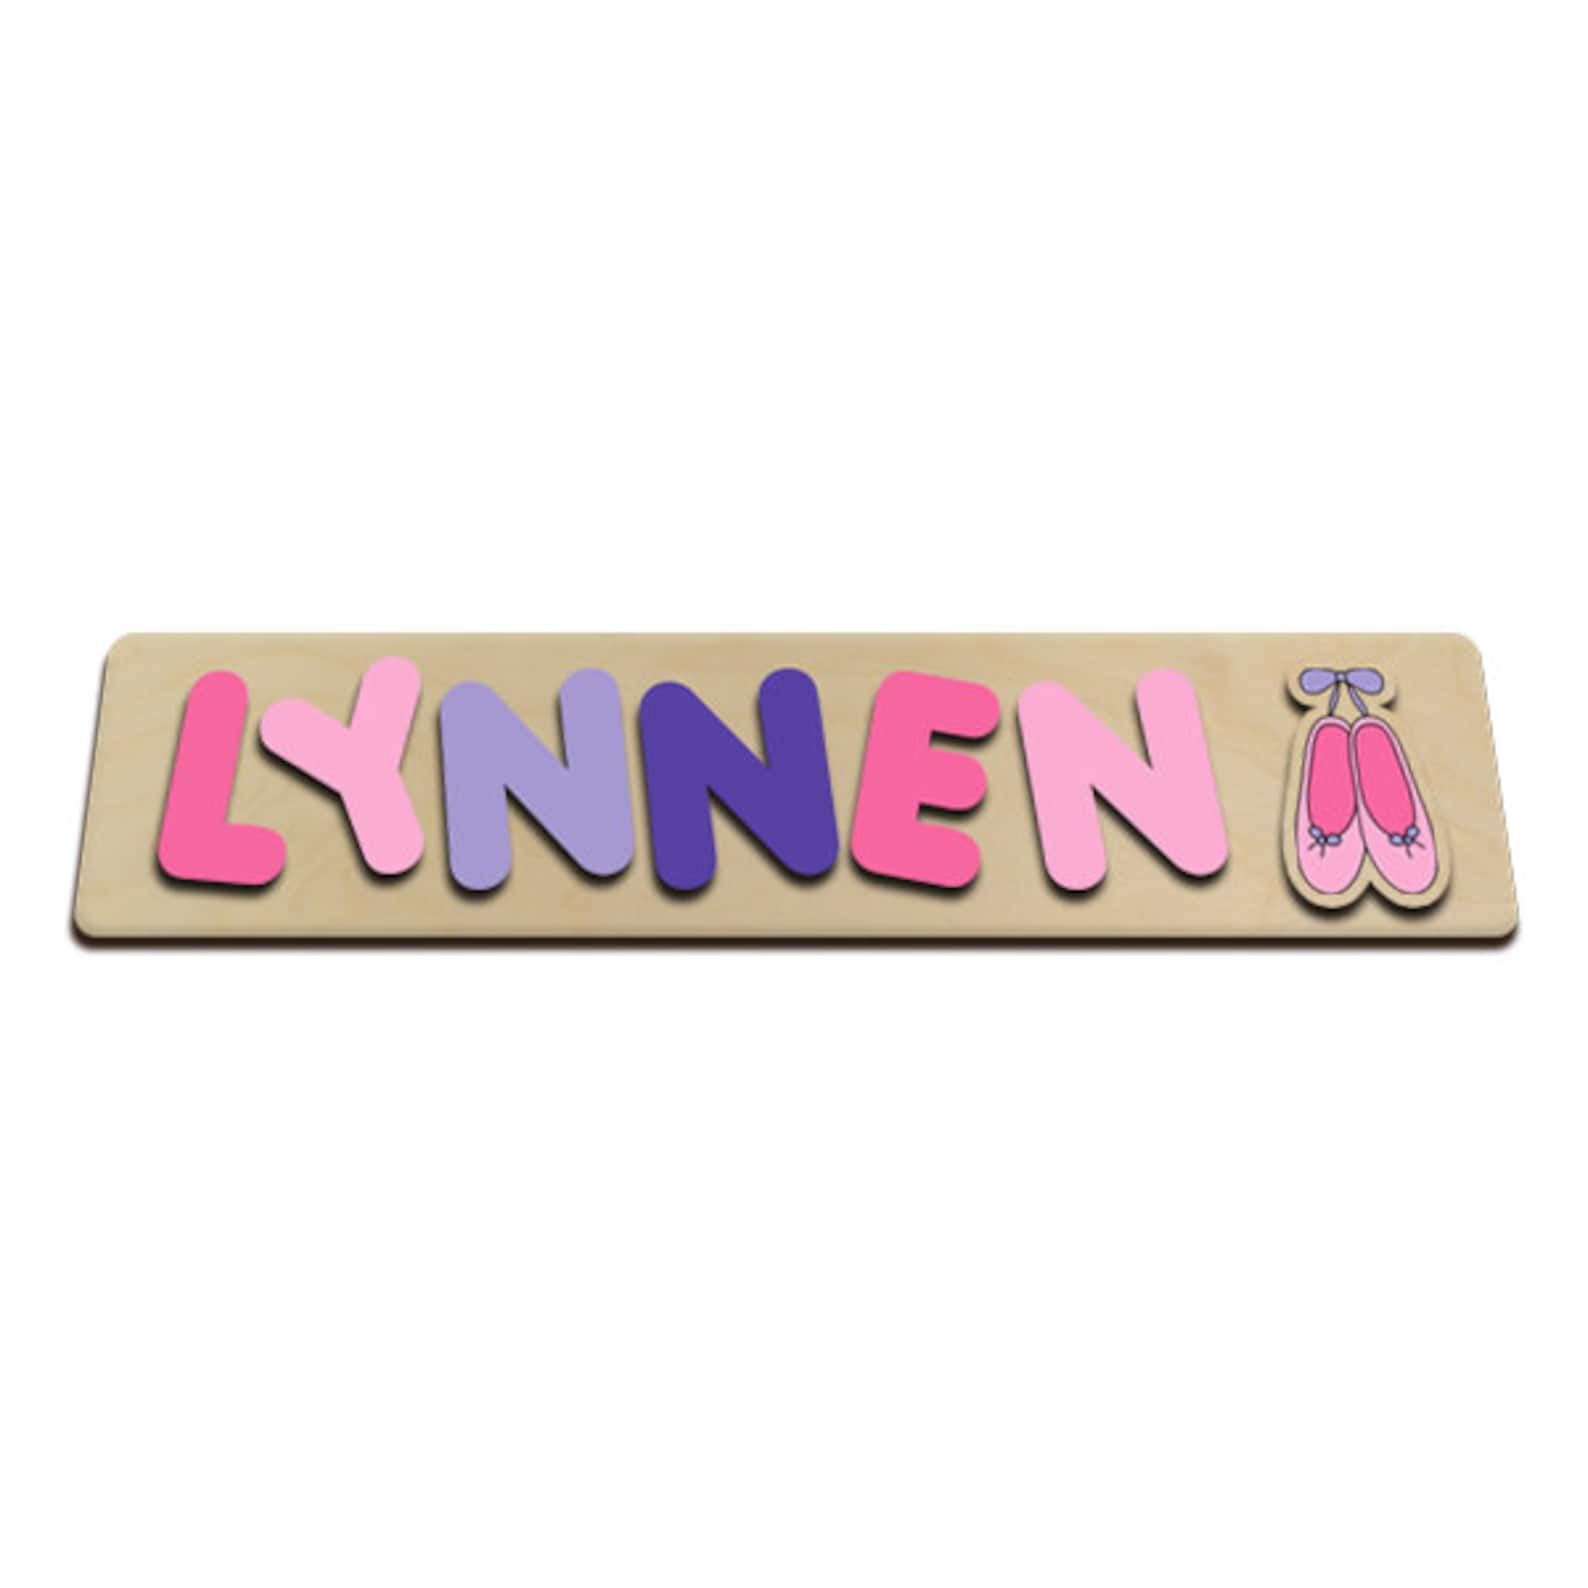 personalized wooden kids name puzzle for girl pink & purple ballet slipper ballerina shoes nice gift for birthday christmas east